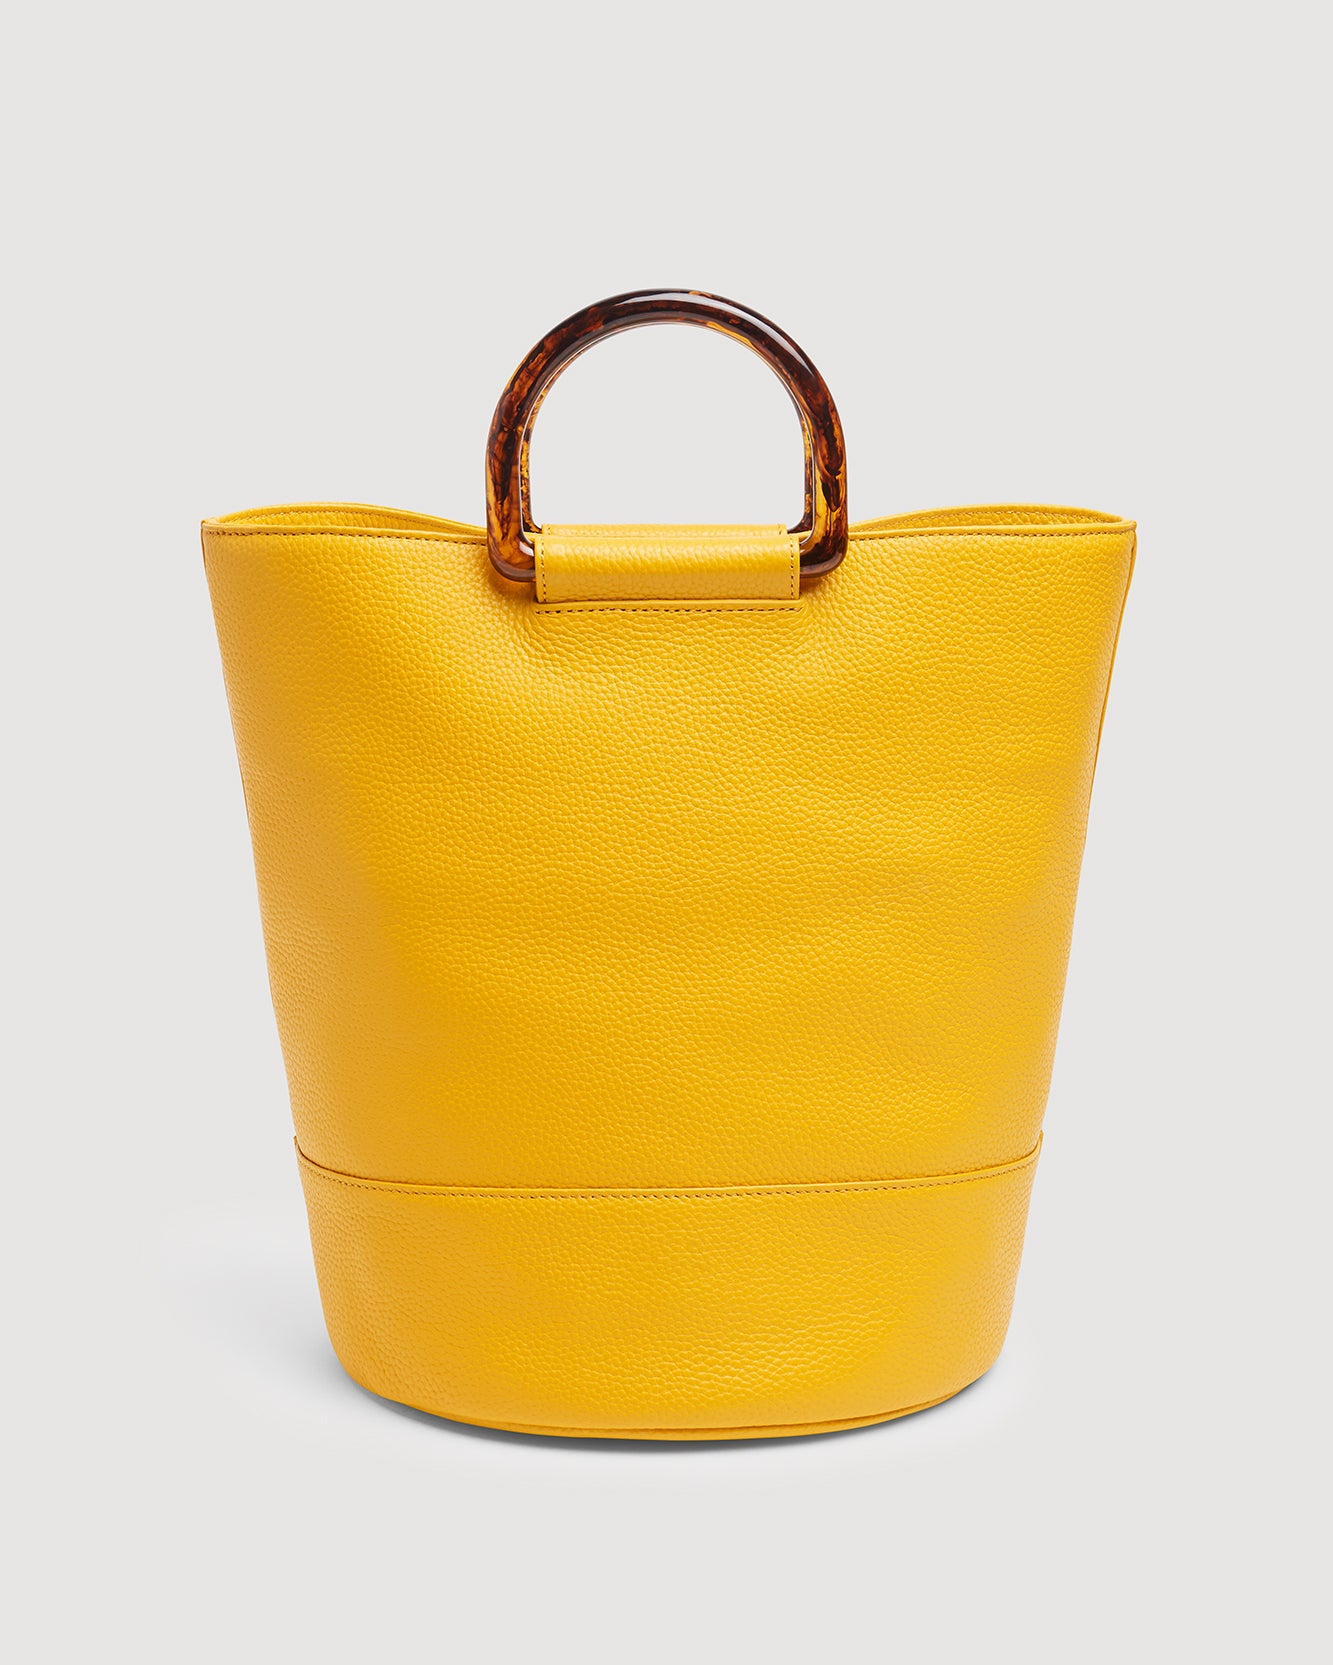 Image of Ring Tote in Yellow